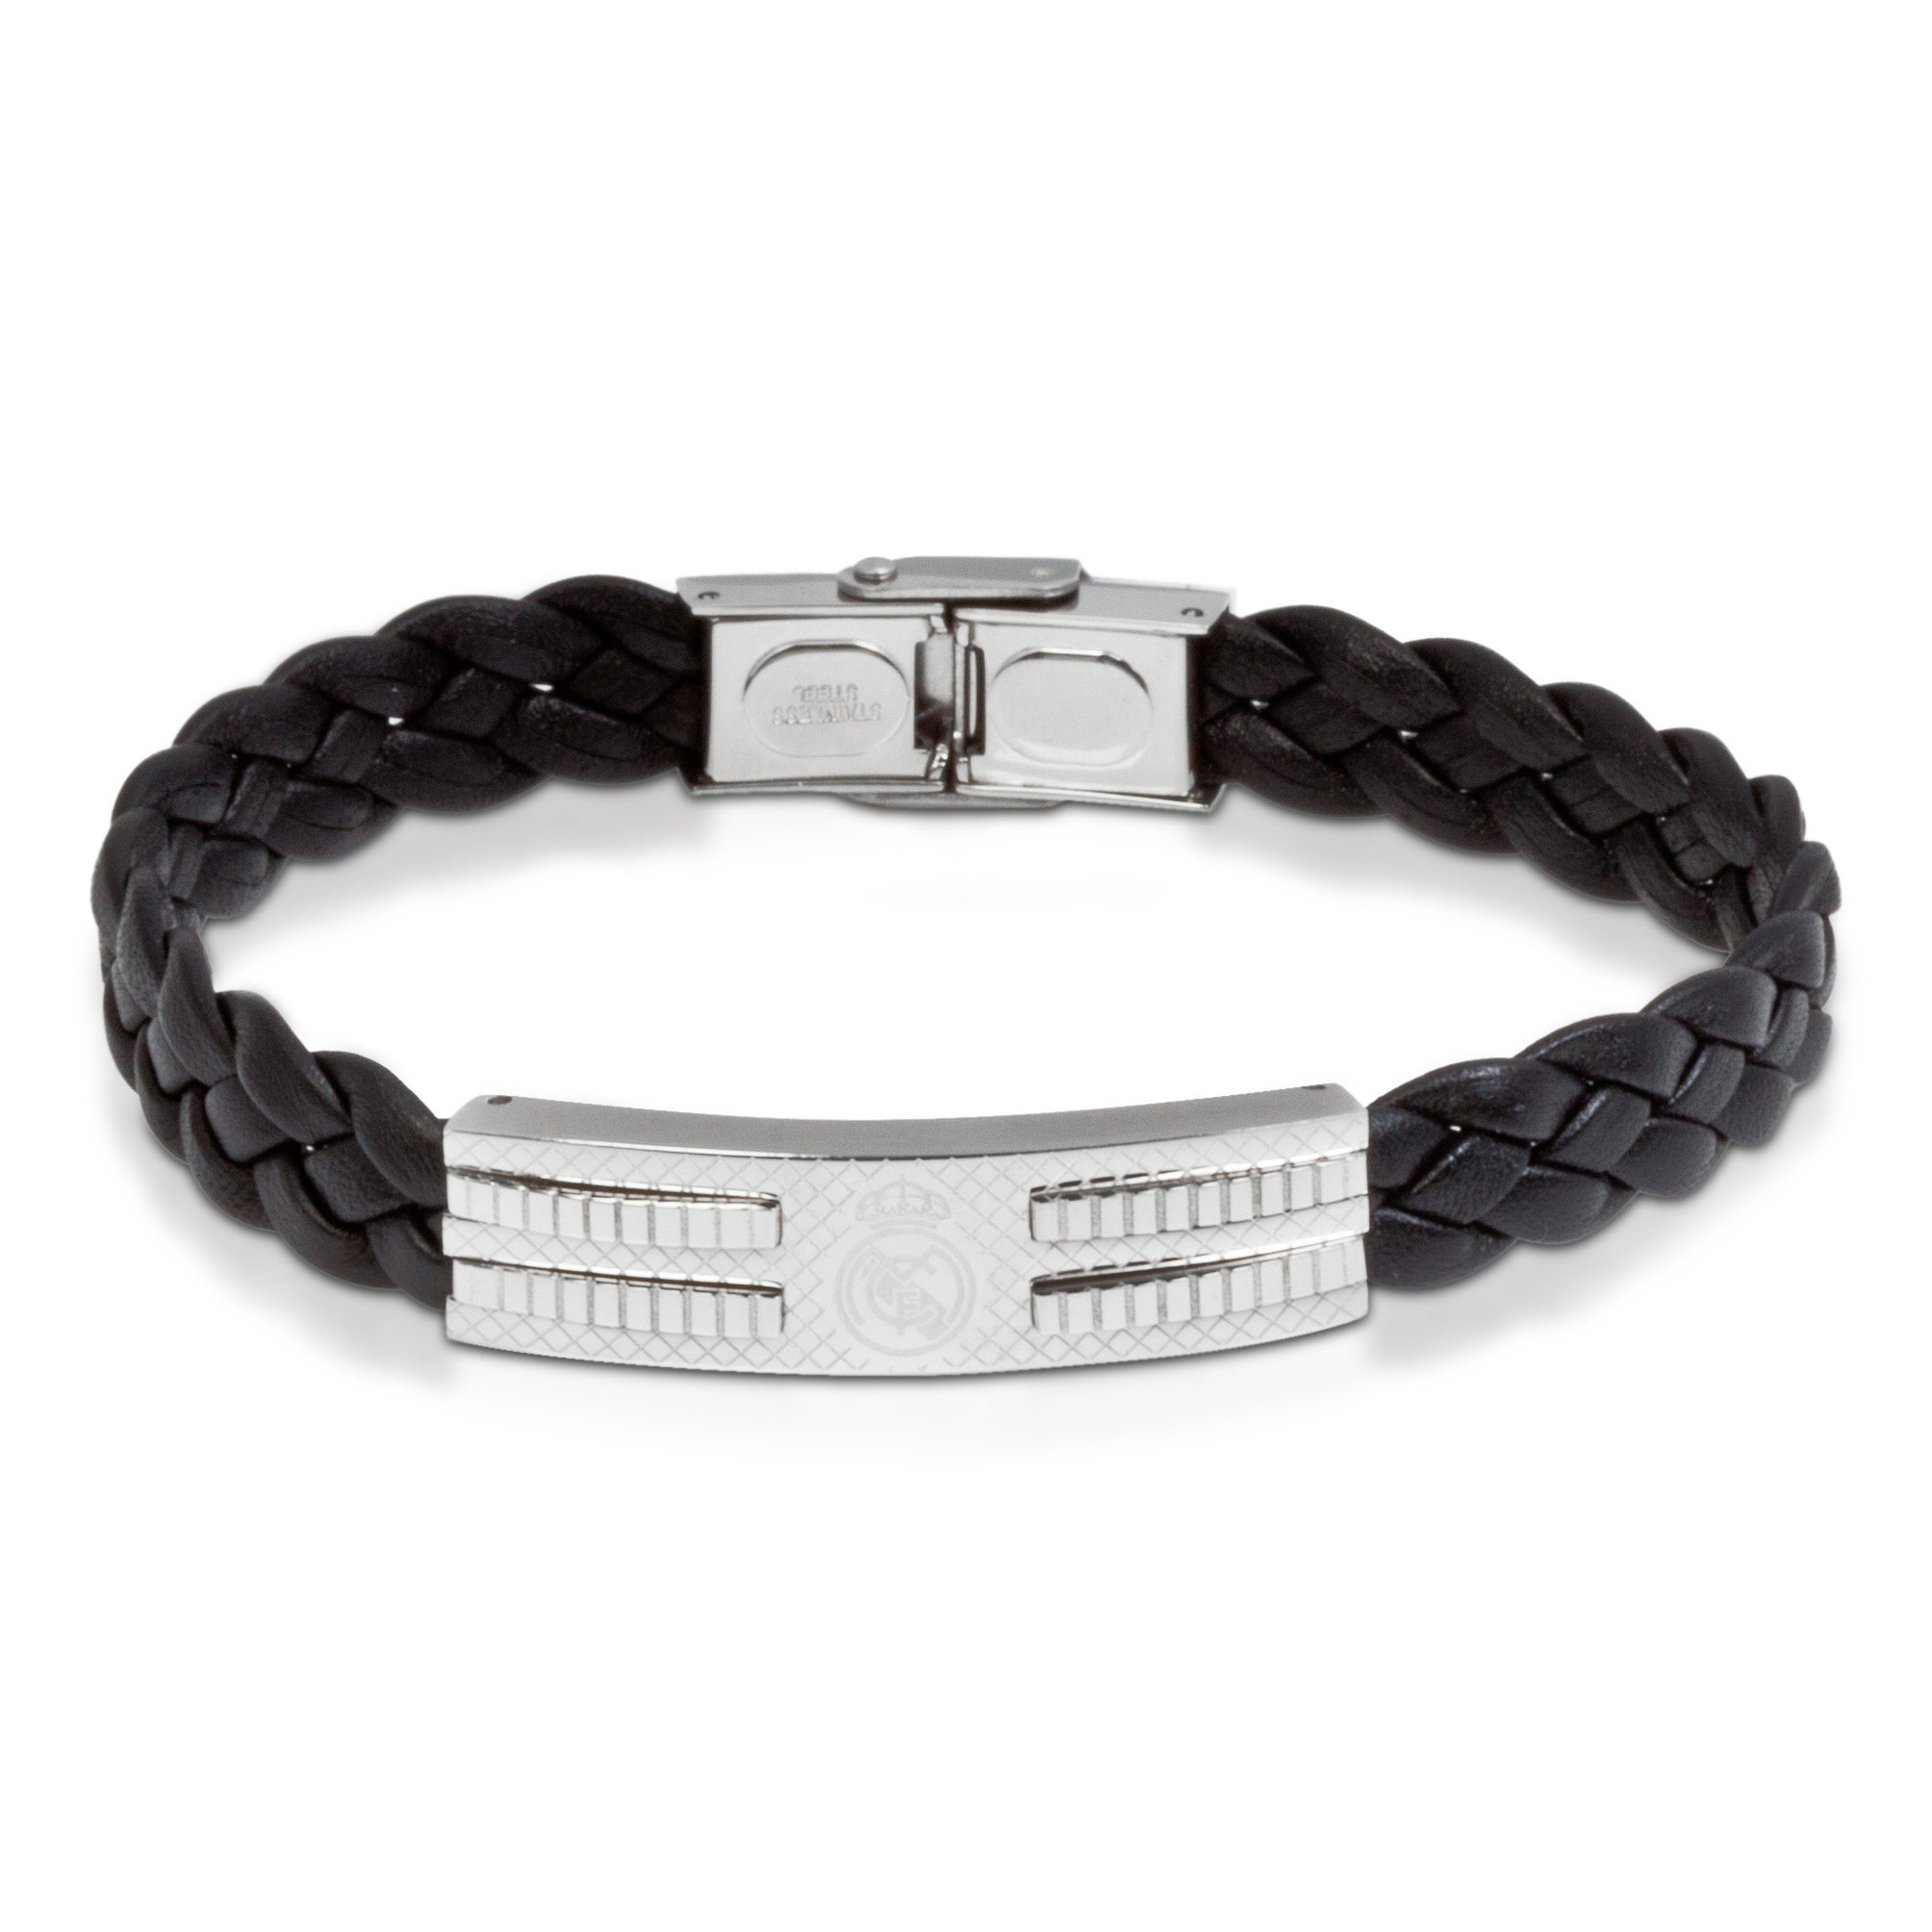 Real Madrid Fashion Bracelet - Stainless Steel